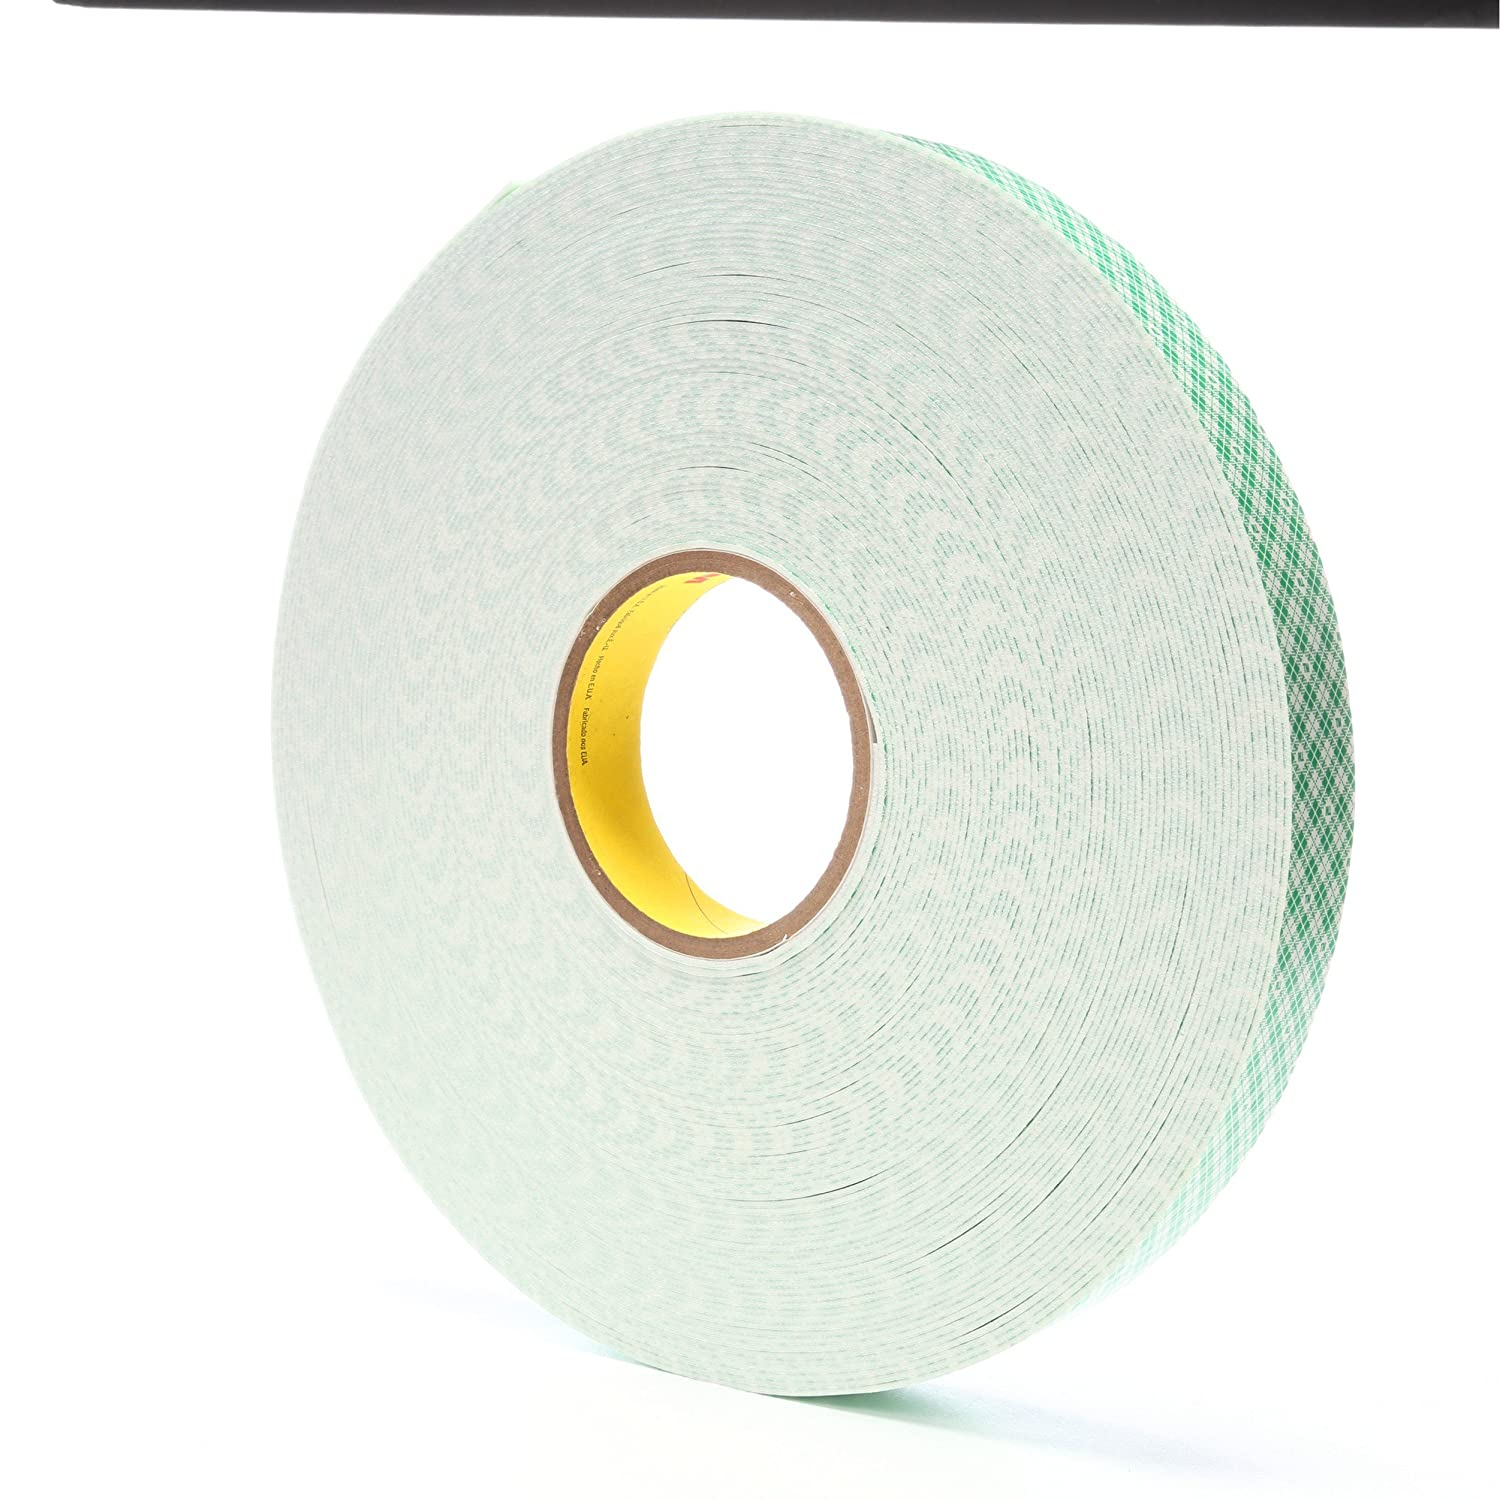 3M 4016 Natural Polyurethane Double Coated Foam Tape 0.75 Width x 36yd Length 1 roll